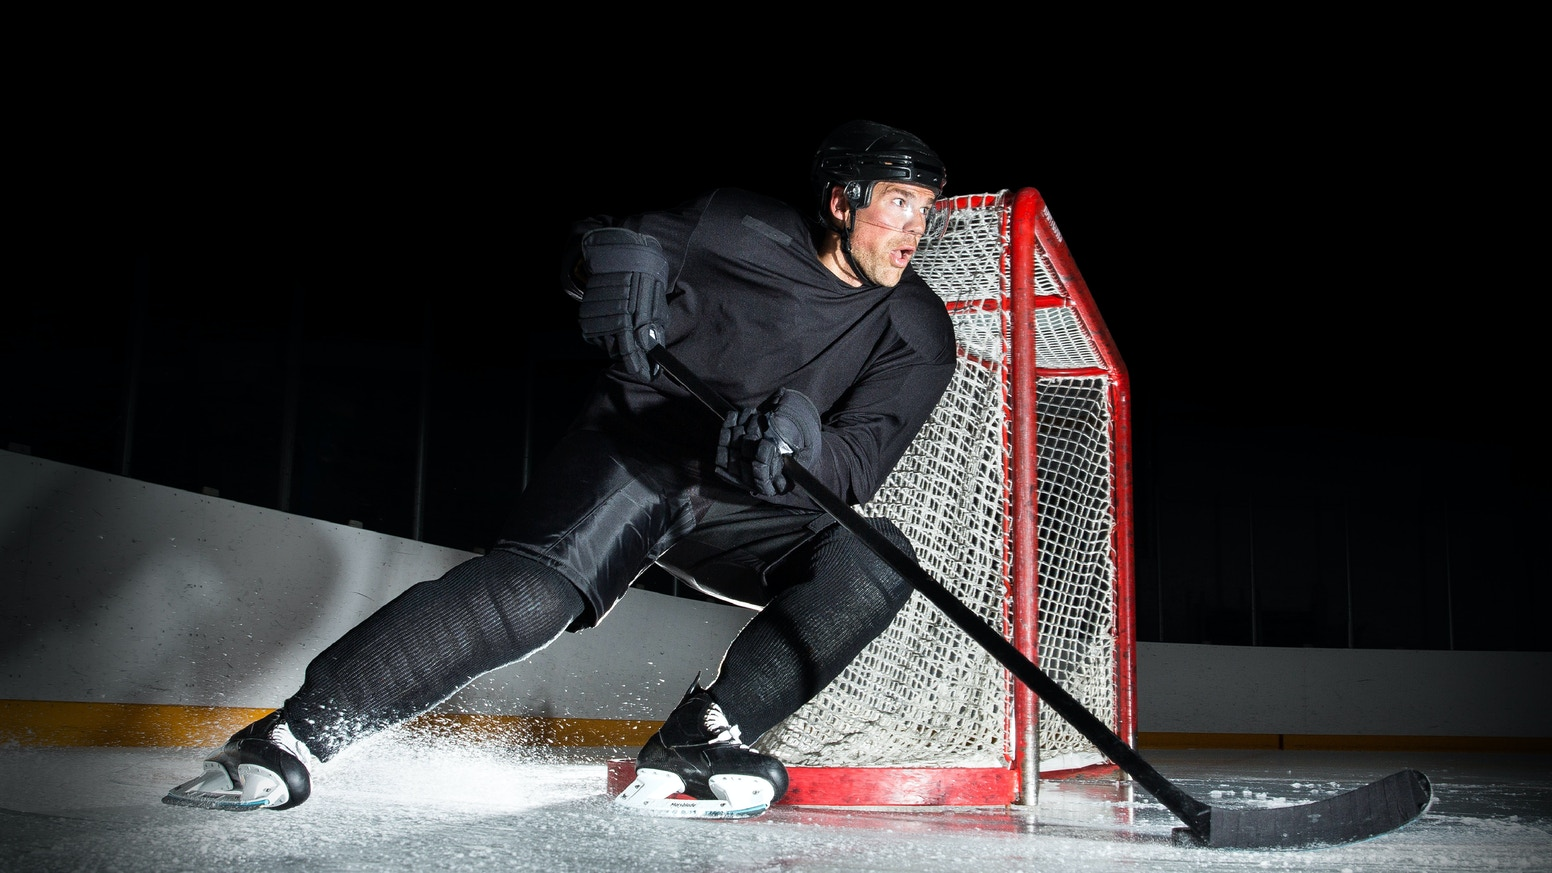 The Marsblade Ice Holder - Setting a new standard in hockey